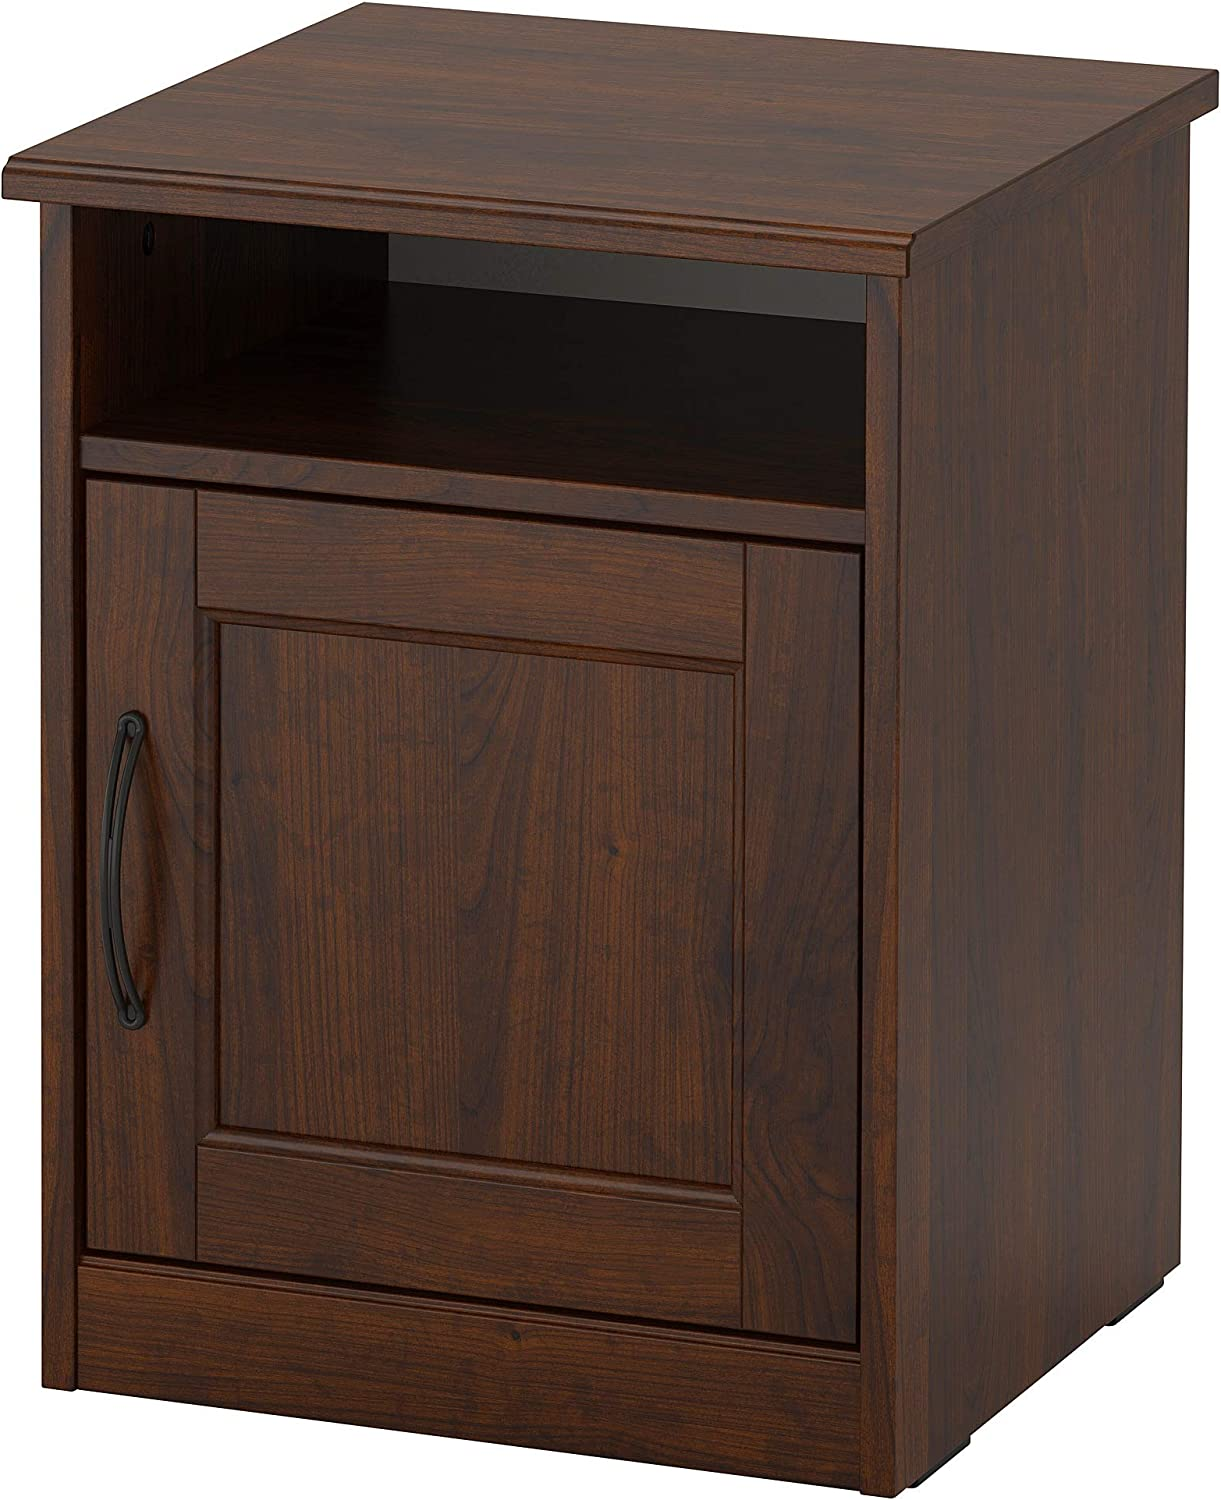 Limited price Spasm price IKEA Songesand Brown Nightstand